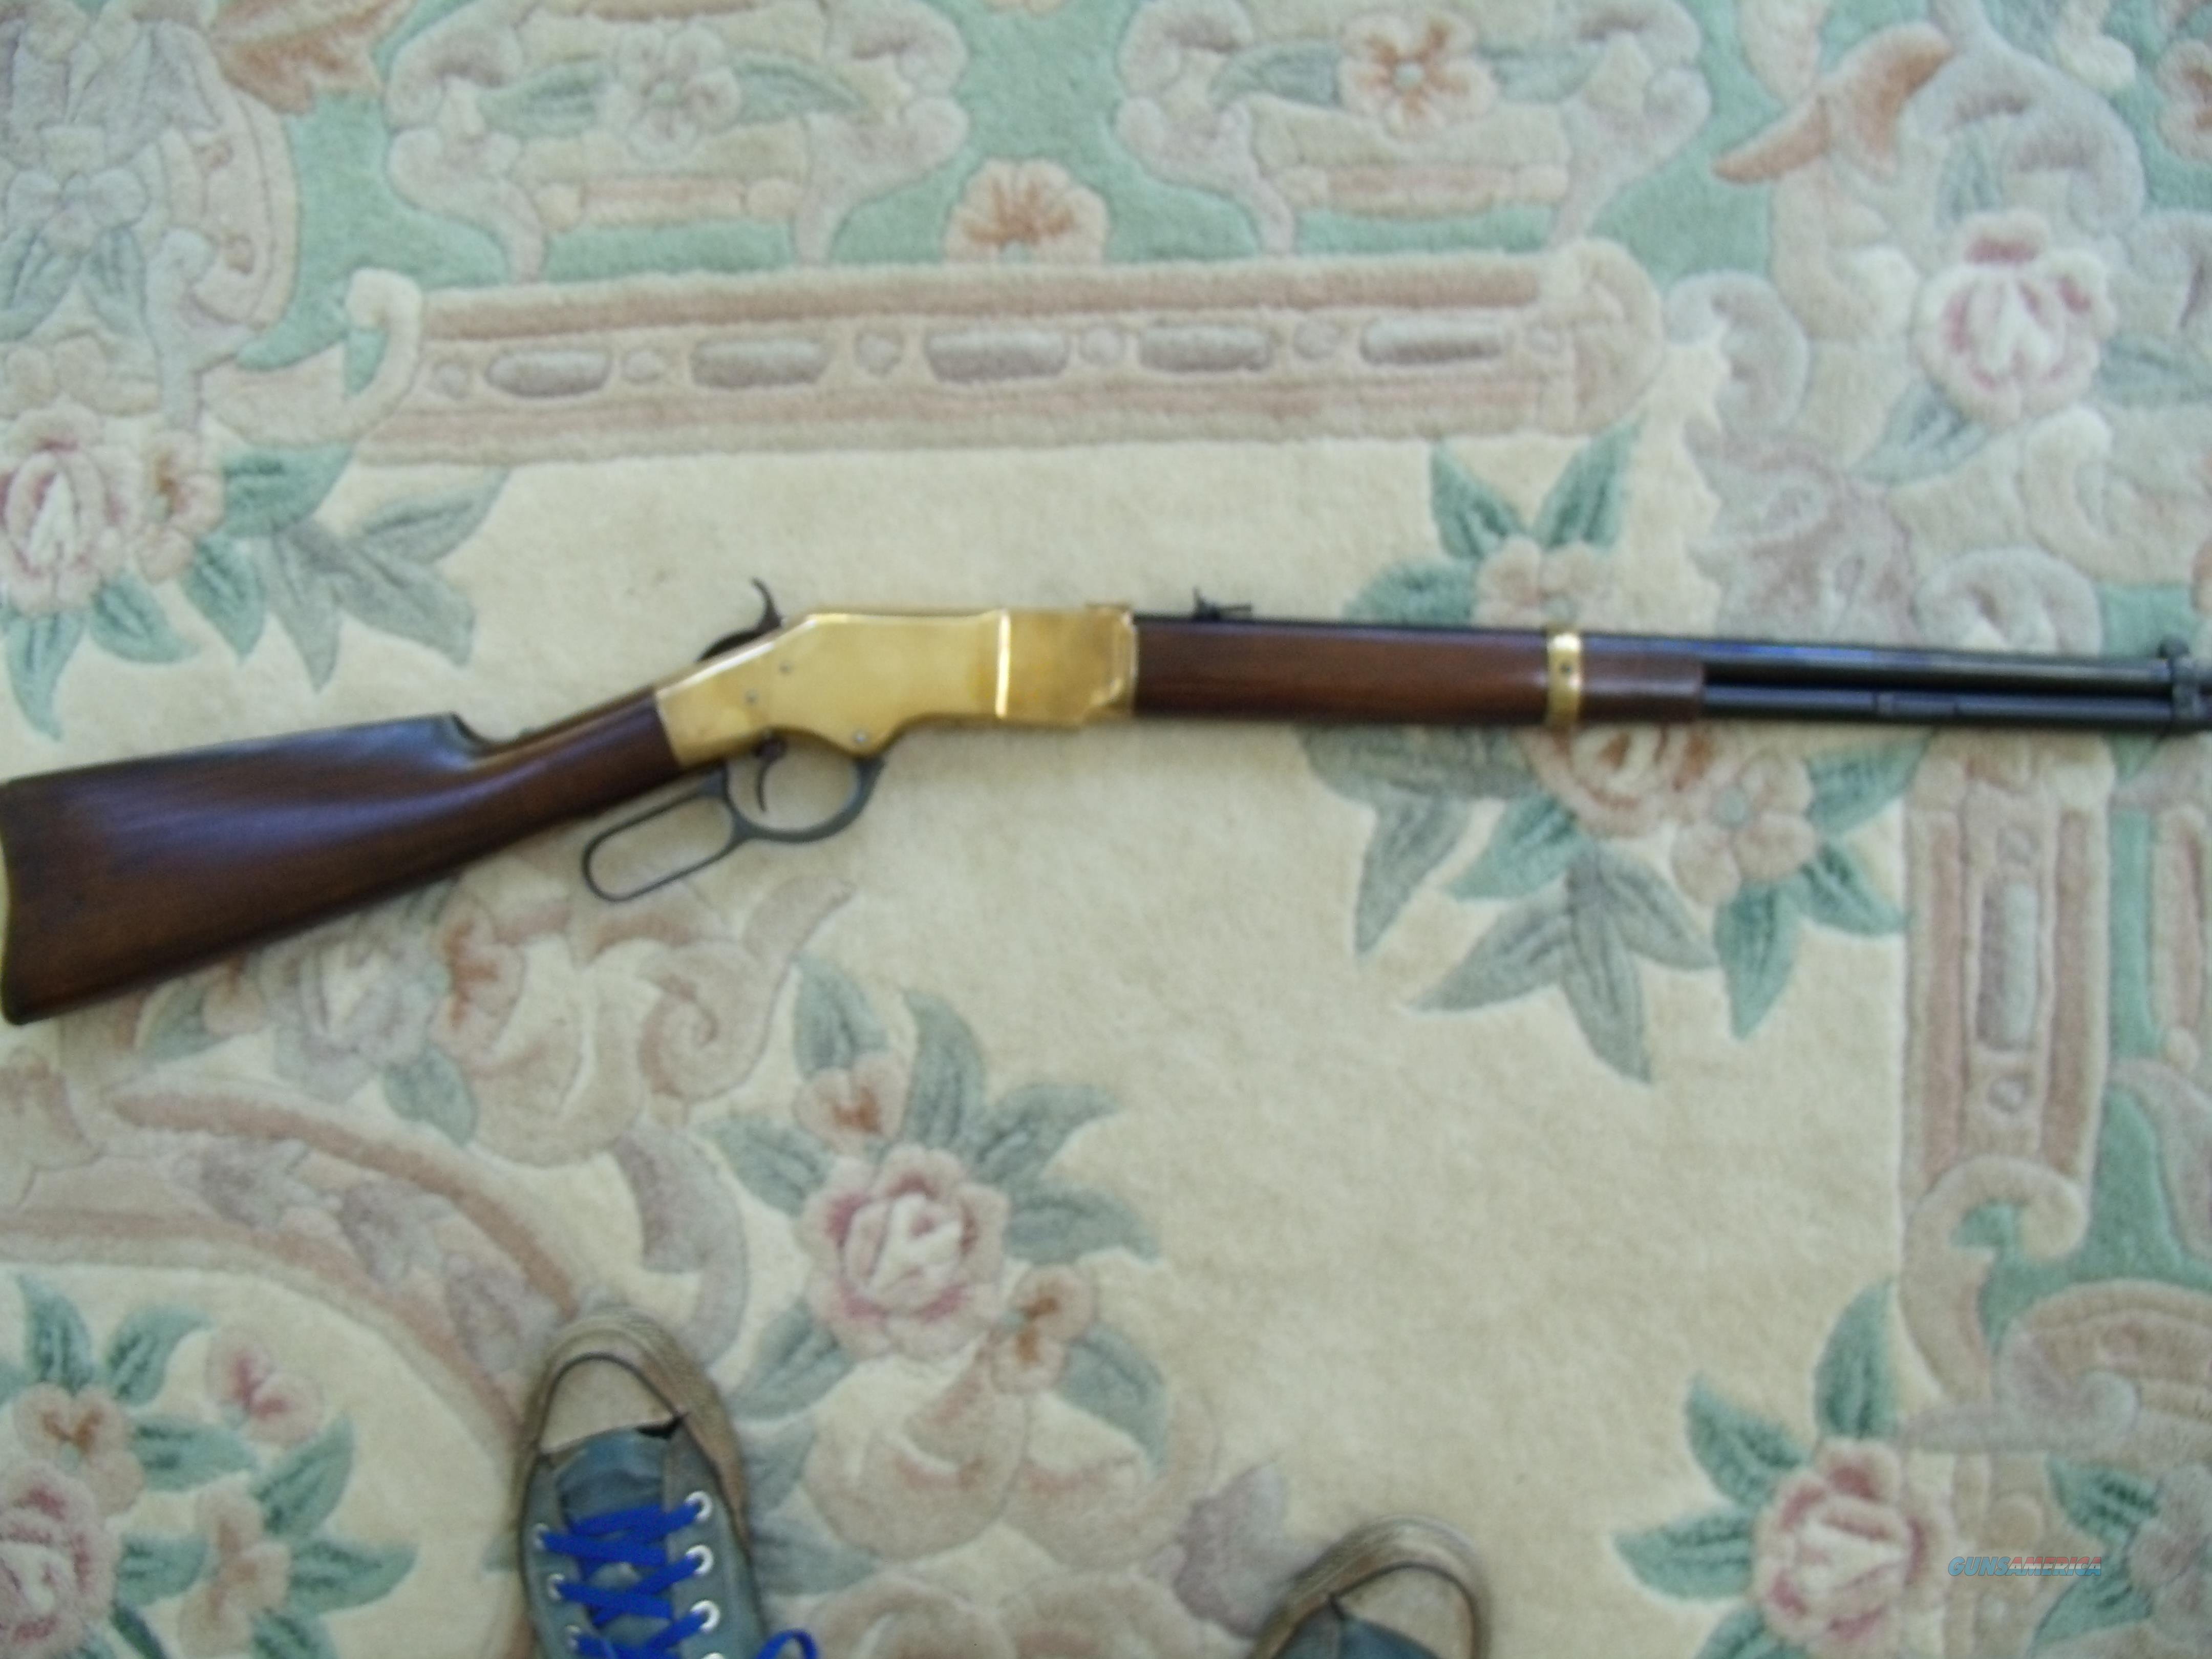 "UBERTI"" YELLOWBOY"" 1666 CARBINE .22LR  Guns > Rifles > Uberti Rifles > Lever Action"